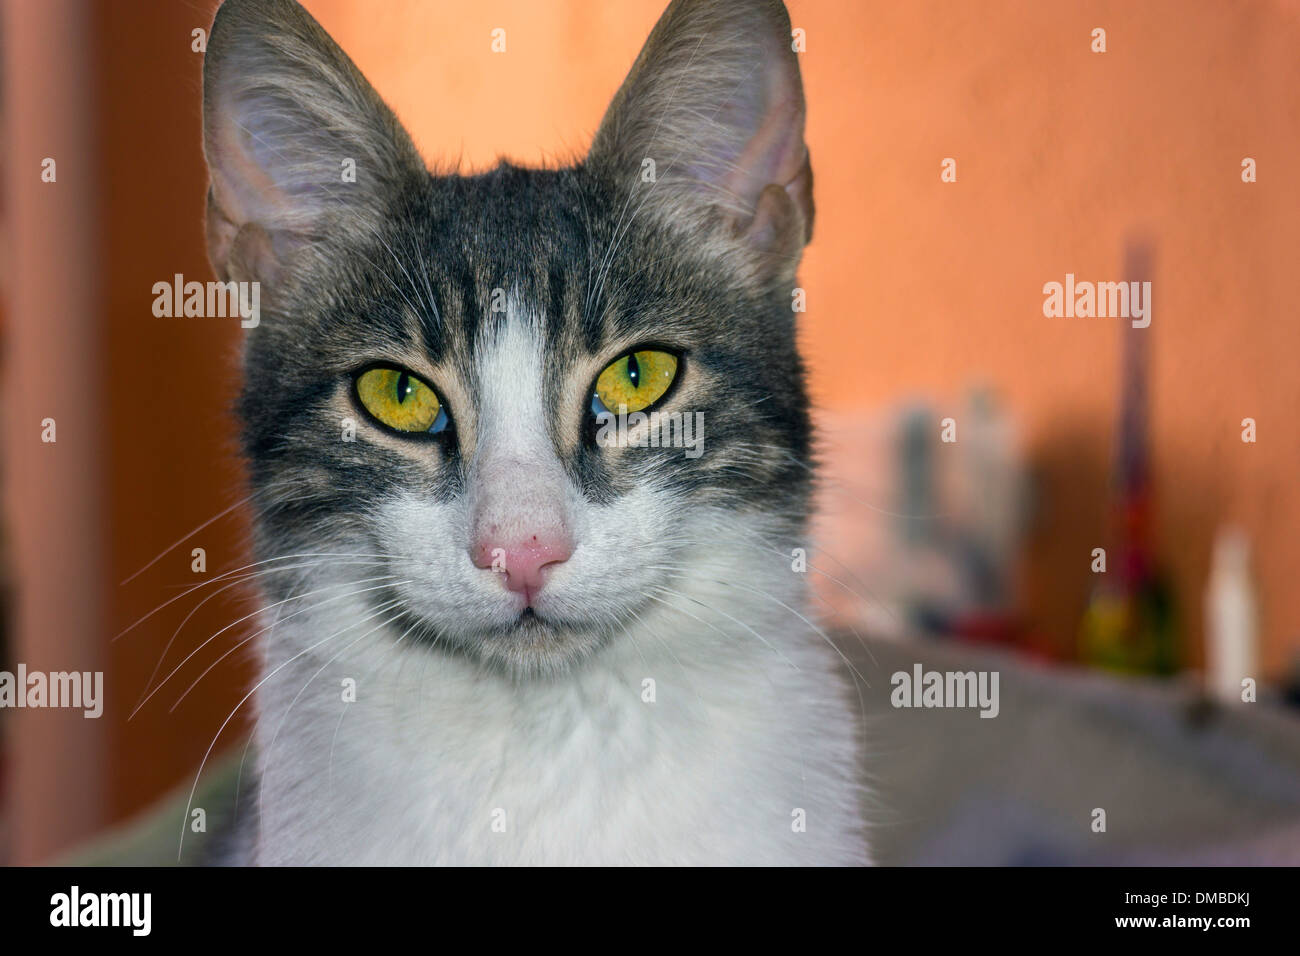 Brown and white cat with yellow eyes and large ears looking at camera - Stock Image